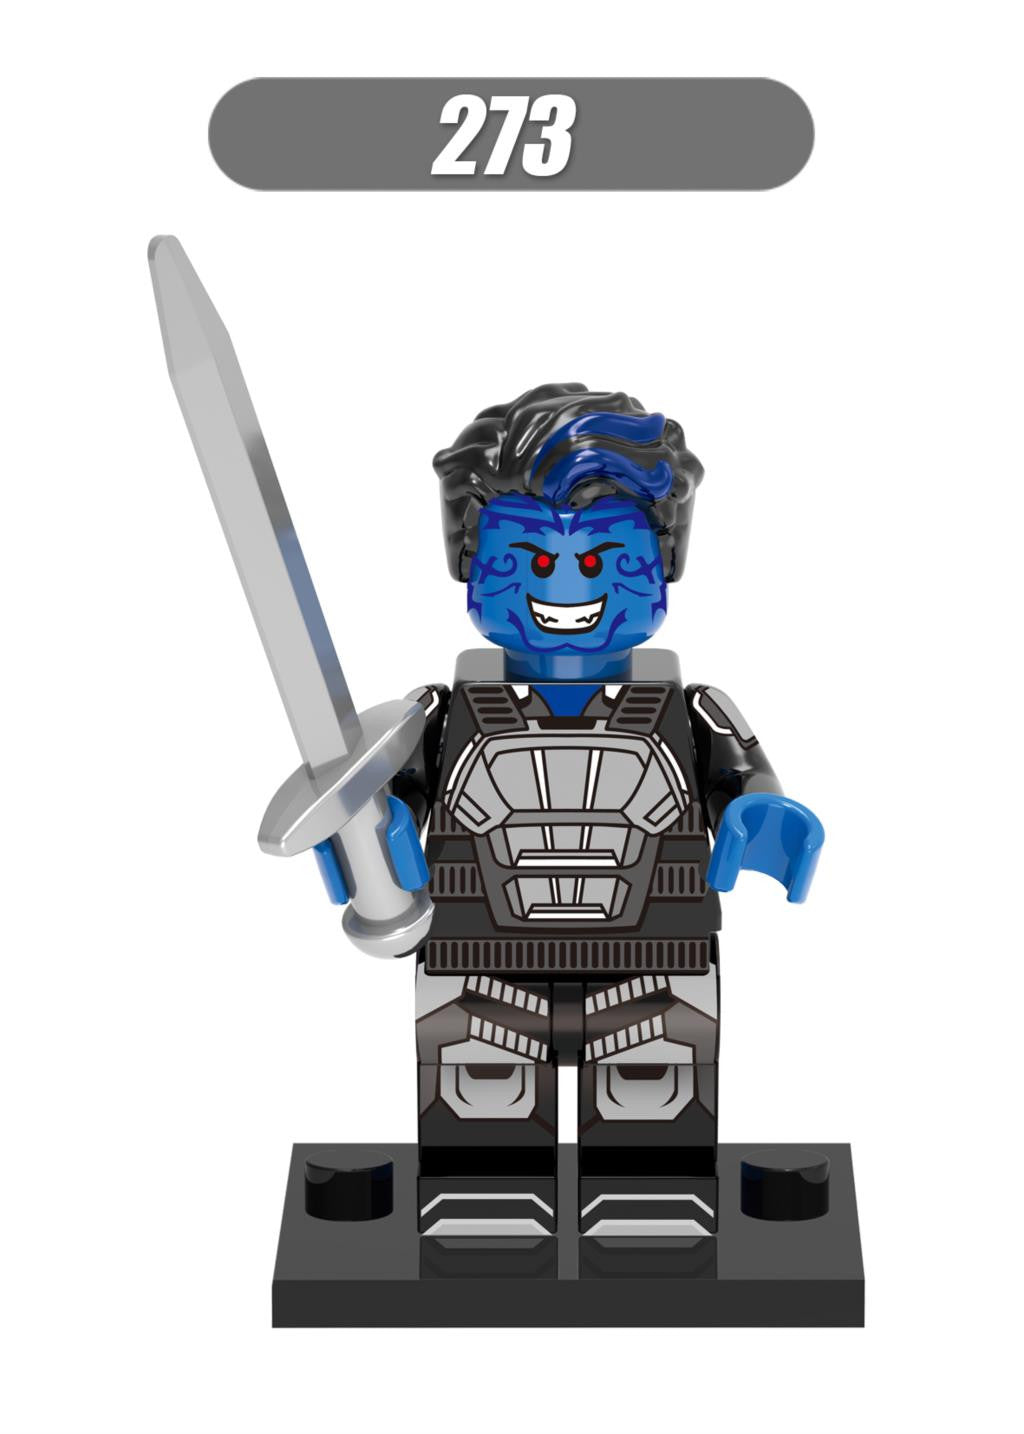 Marvel - X-Men: Apocalypse - Nightcrawler Minifigure